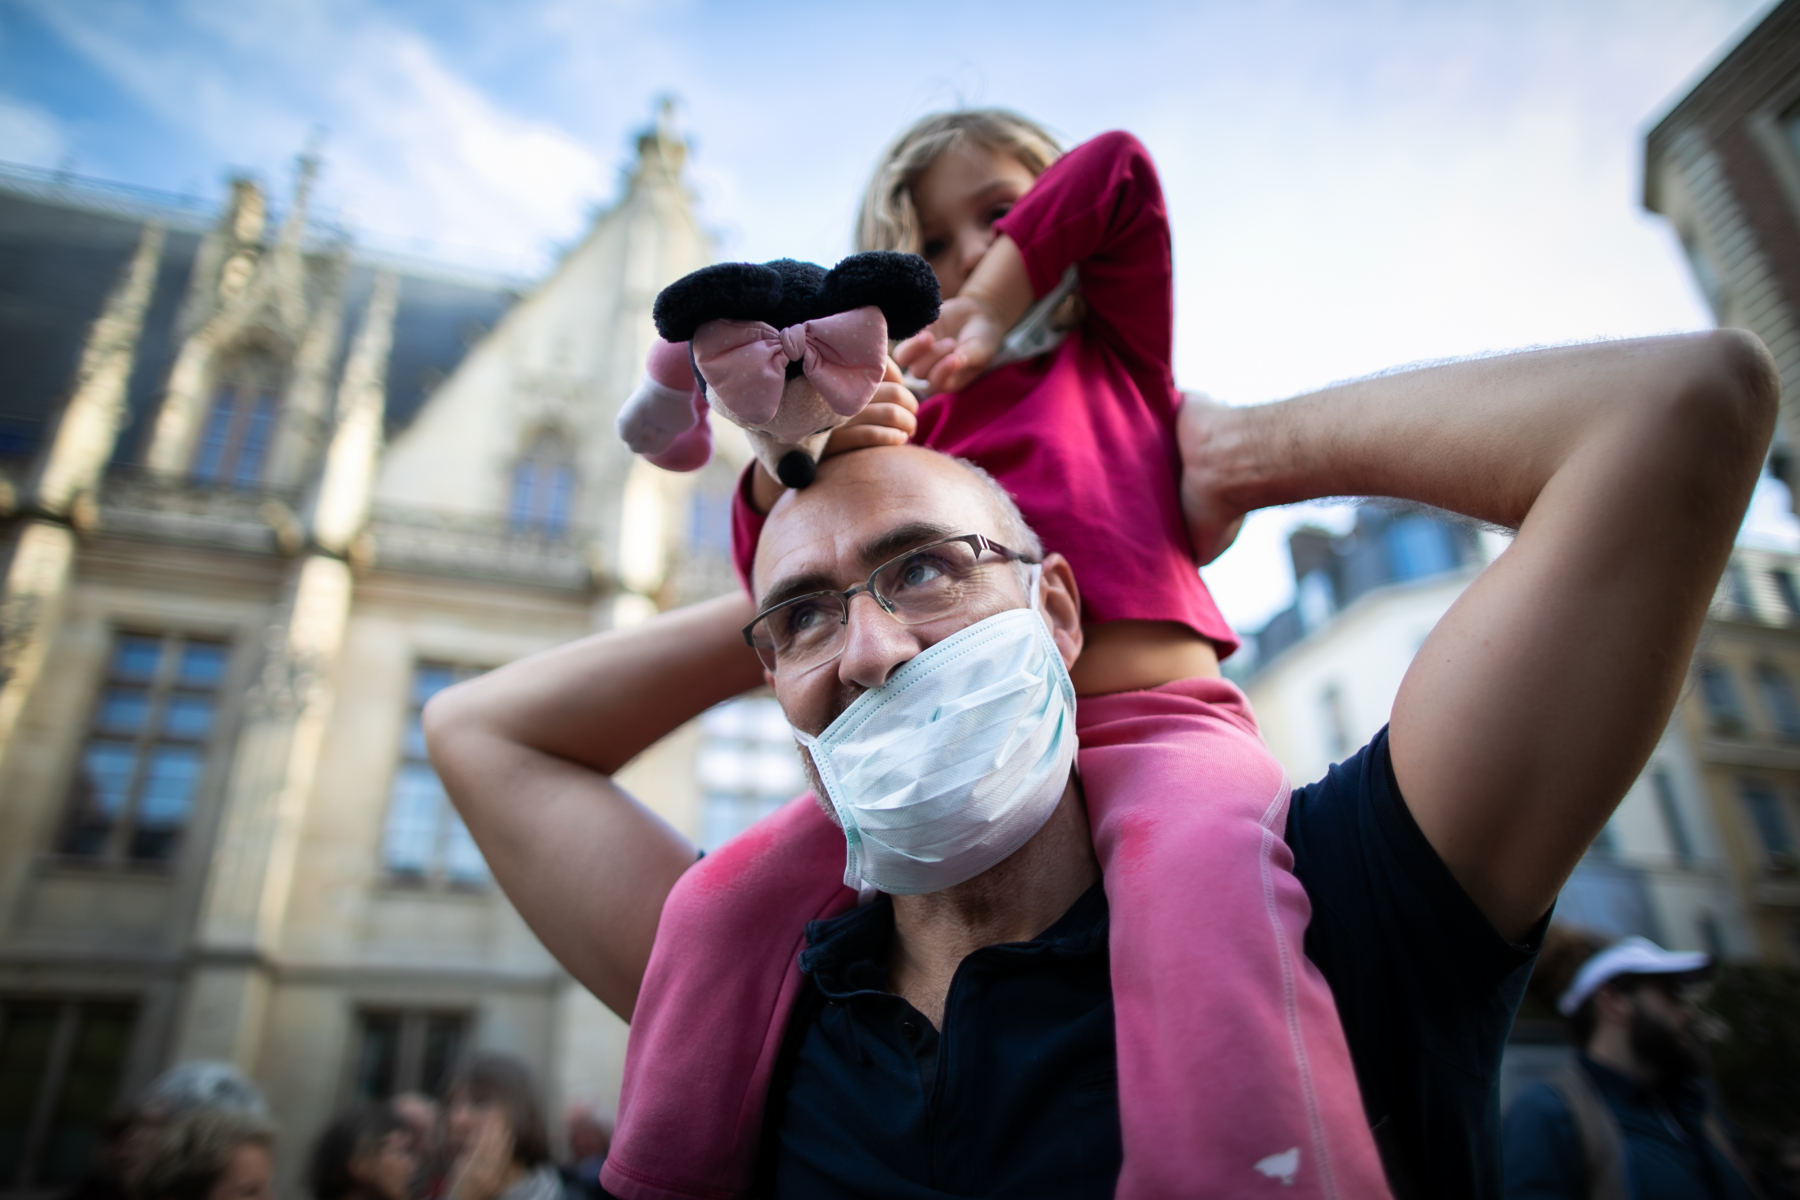 A man wears a mask as he holds her daughter during a demonstration challenging the management of the lubrizol case, on October 26, 2019, in Rouen, one month after the fire at the Lubrizol factory.